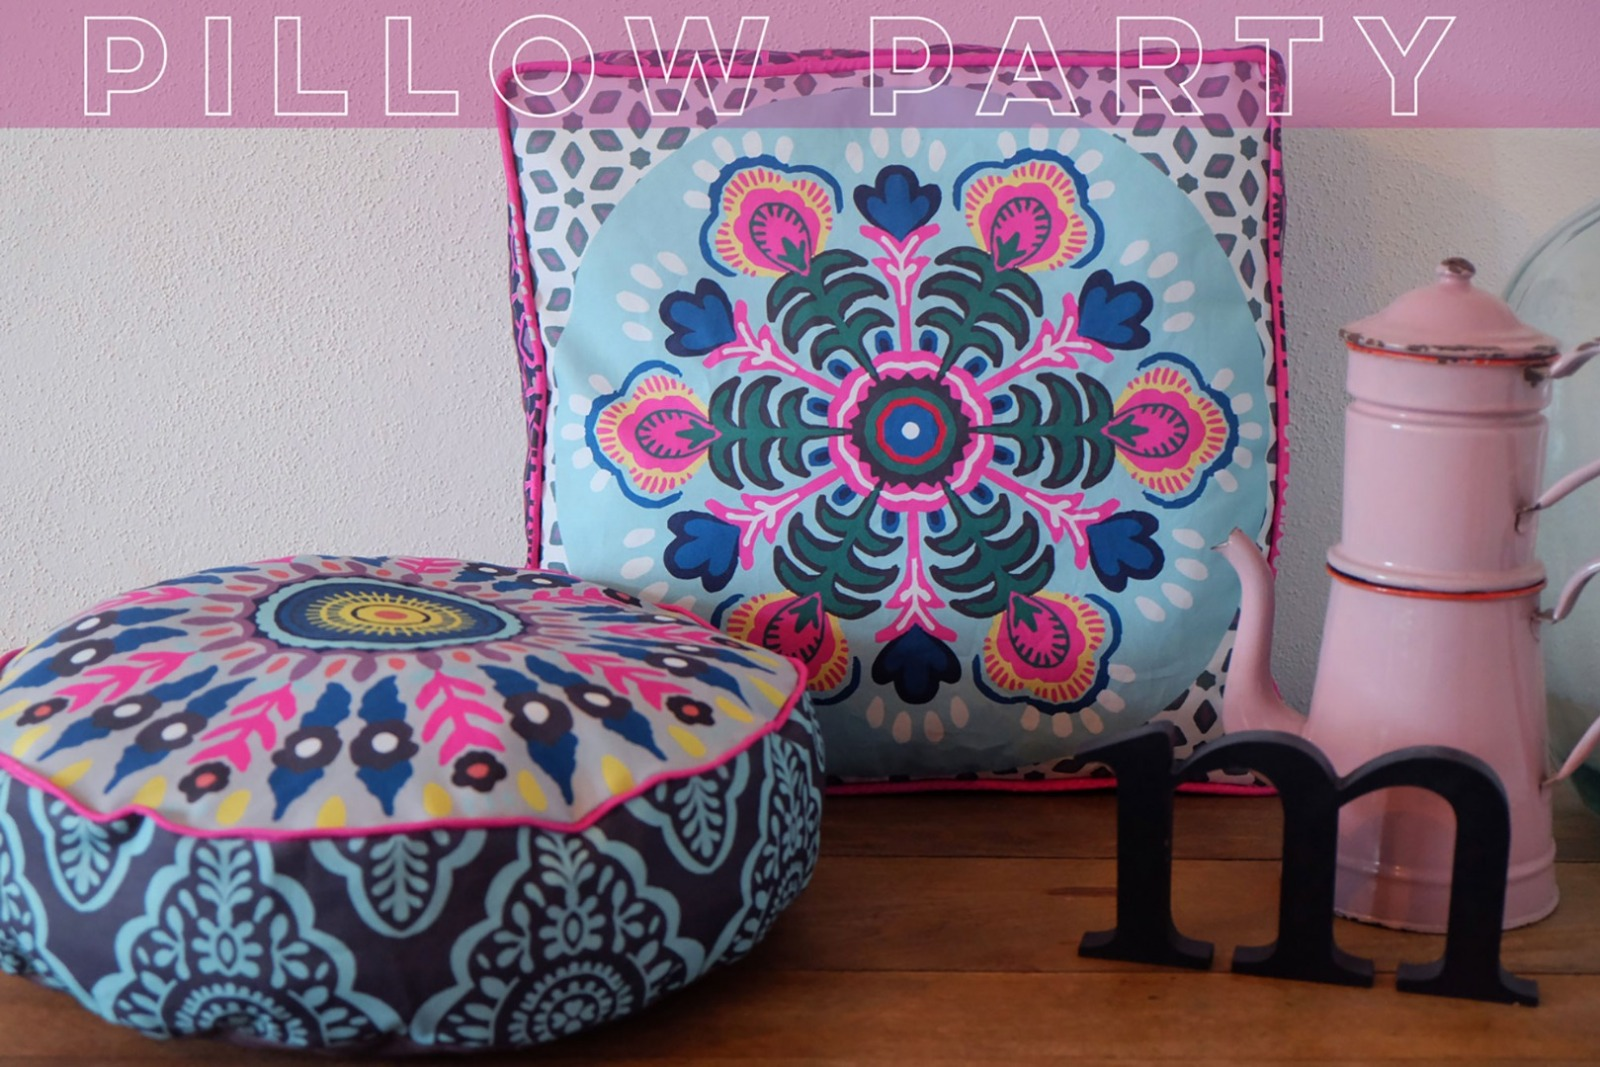 1Panel Dekostoff Pillow Party by jolijou